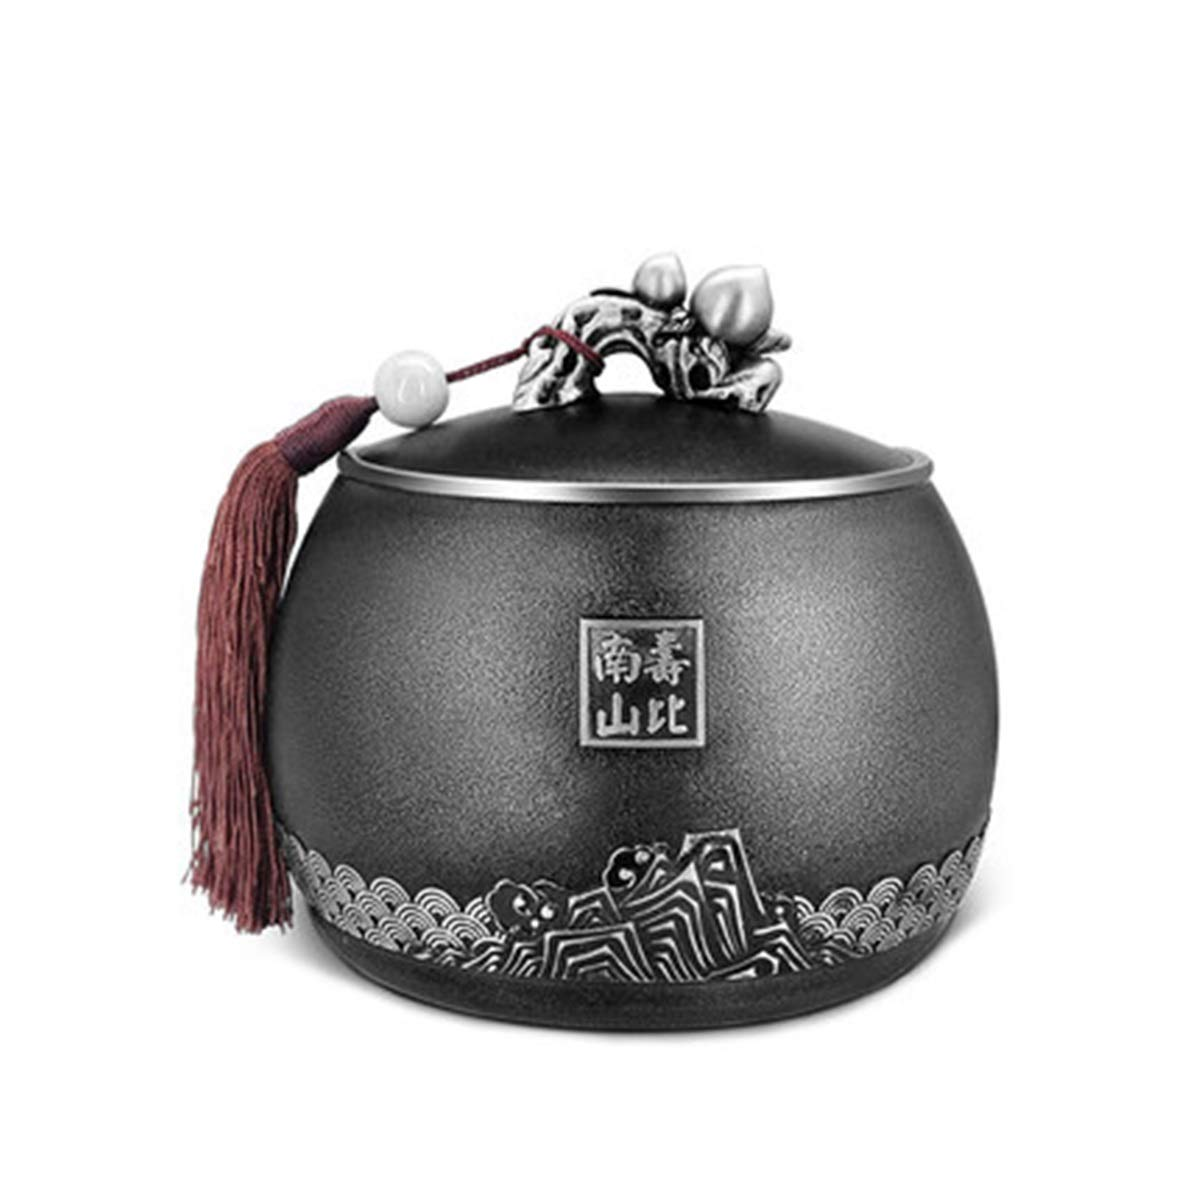 13.813cm Kuqiqi Pet Urn,Cremation Urns For Pets,Functional Urn,Ceramic Sealed,Keepsake Box For Dogs And Cats,Tea can,artwork,Home decoration,13.8  13cm (Size   13.8  13cm)